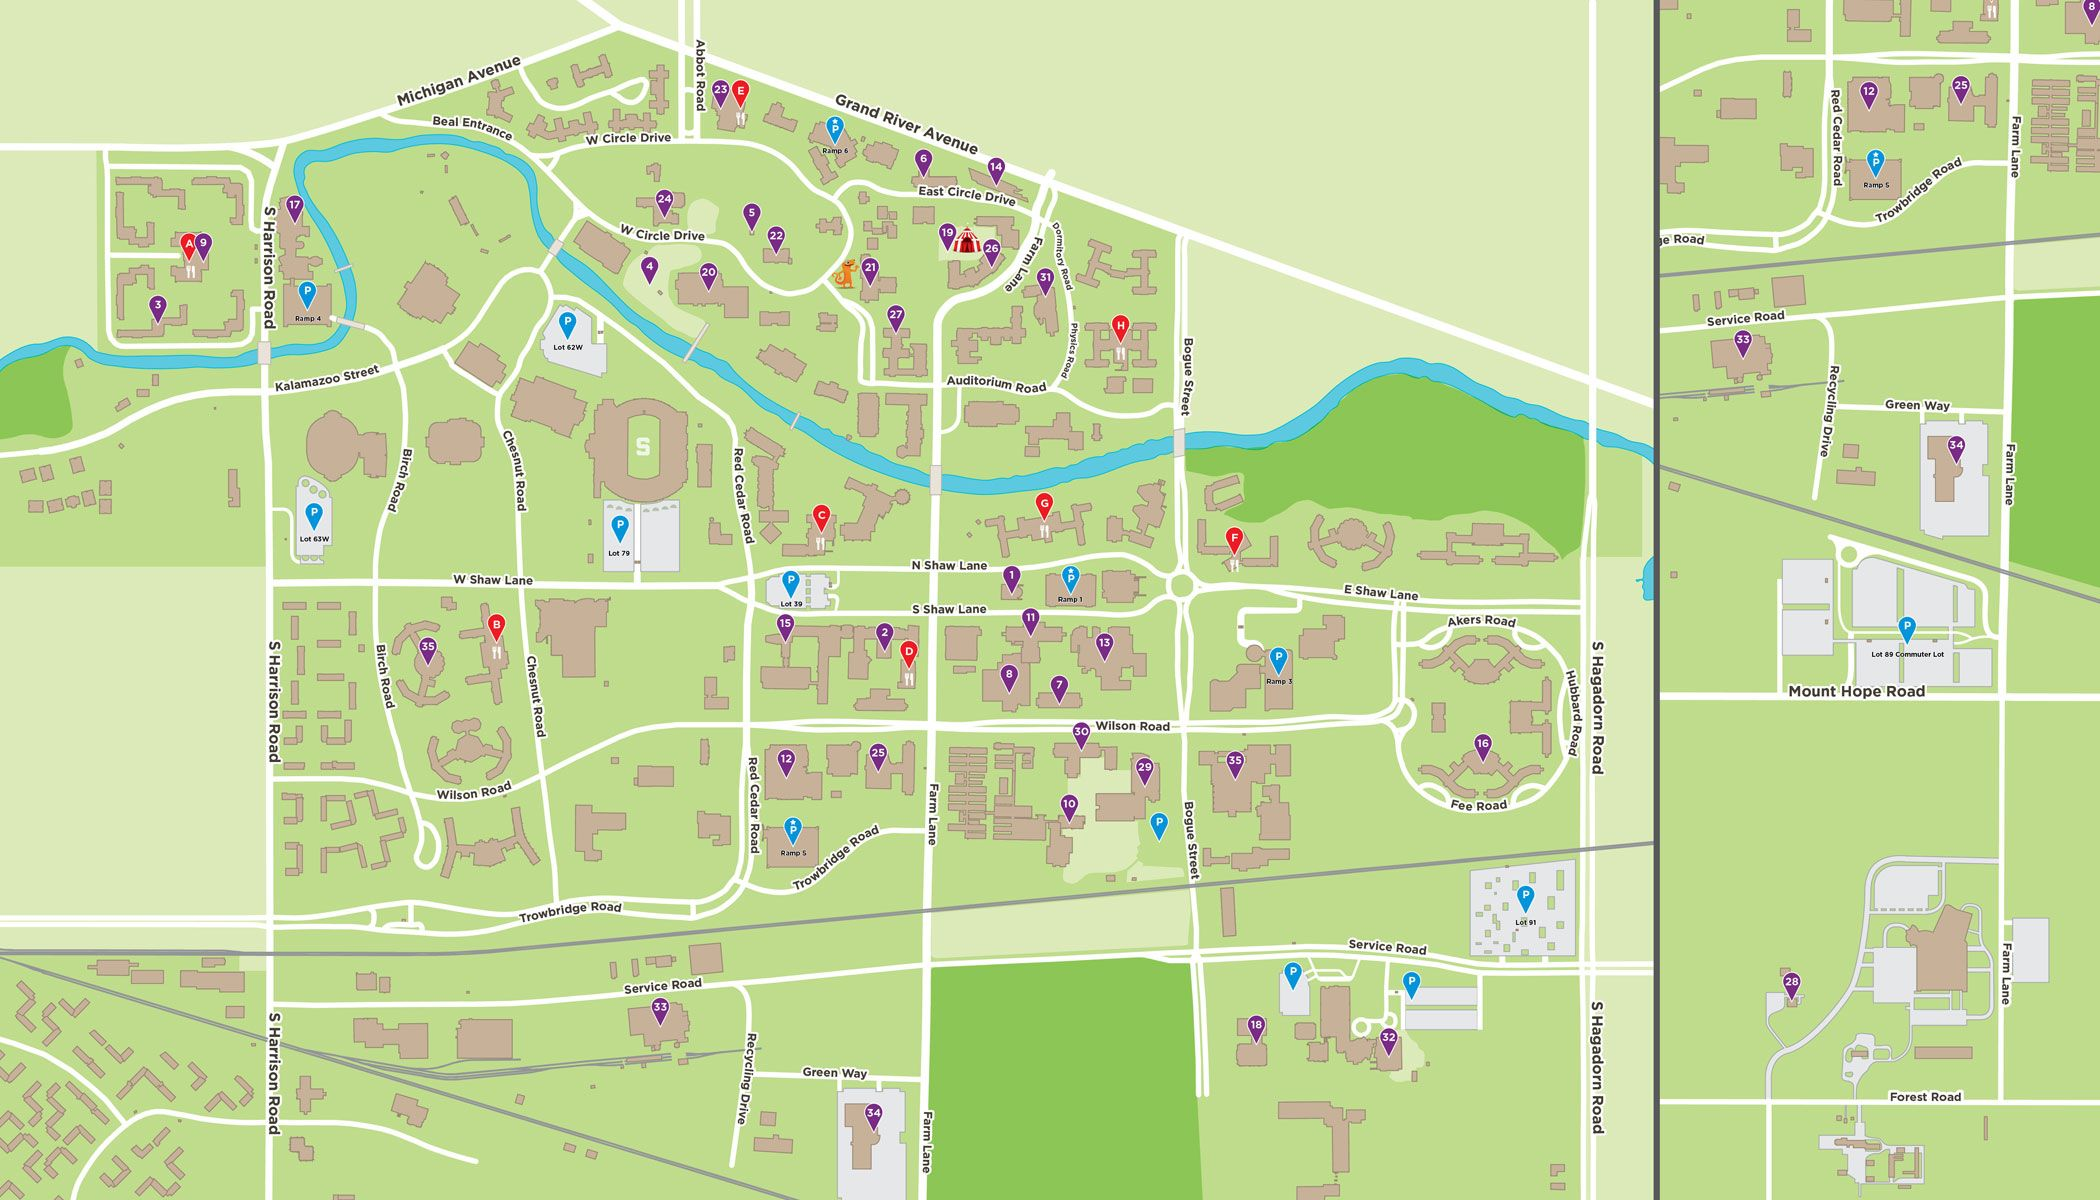 Msu Campus Map On The Banks Of The Red Cedar River Life At Msu